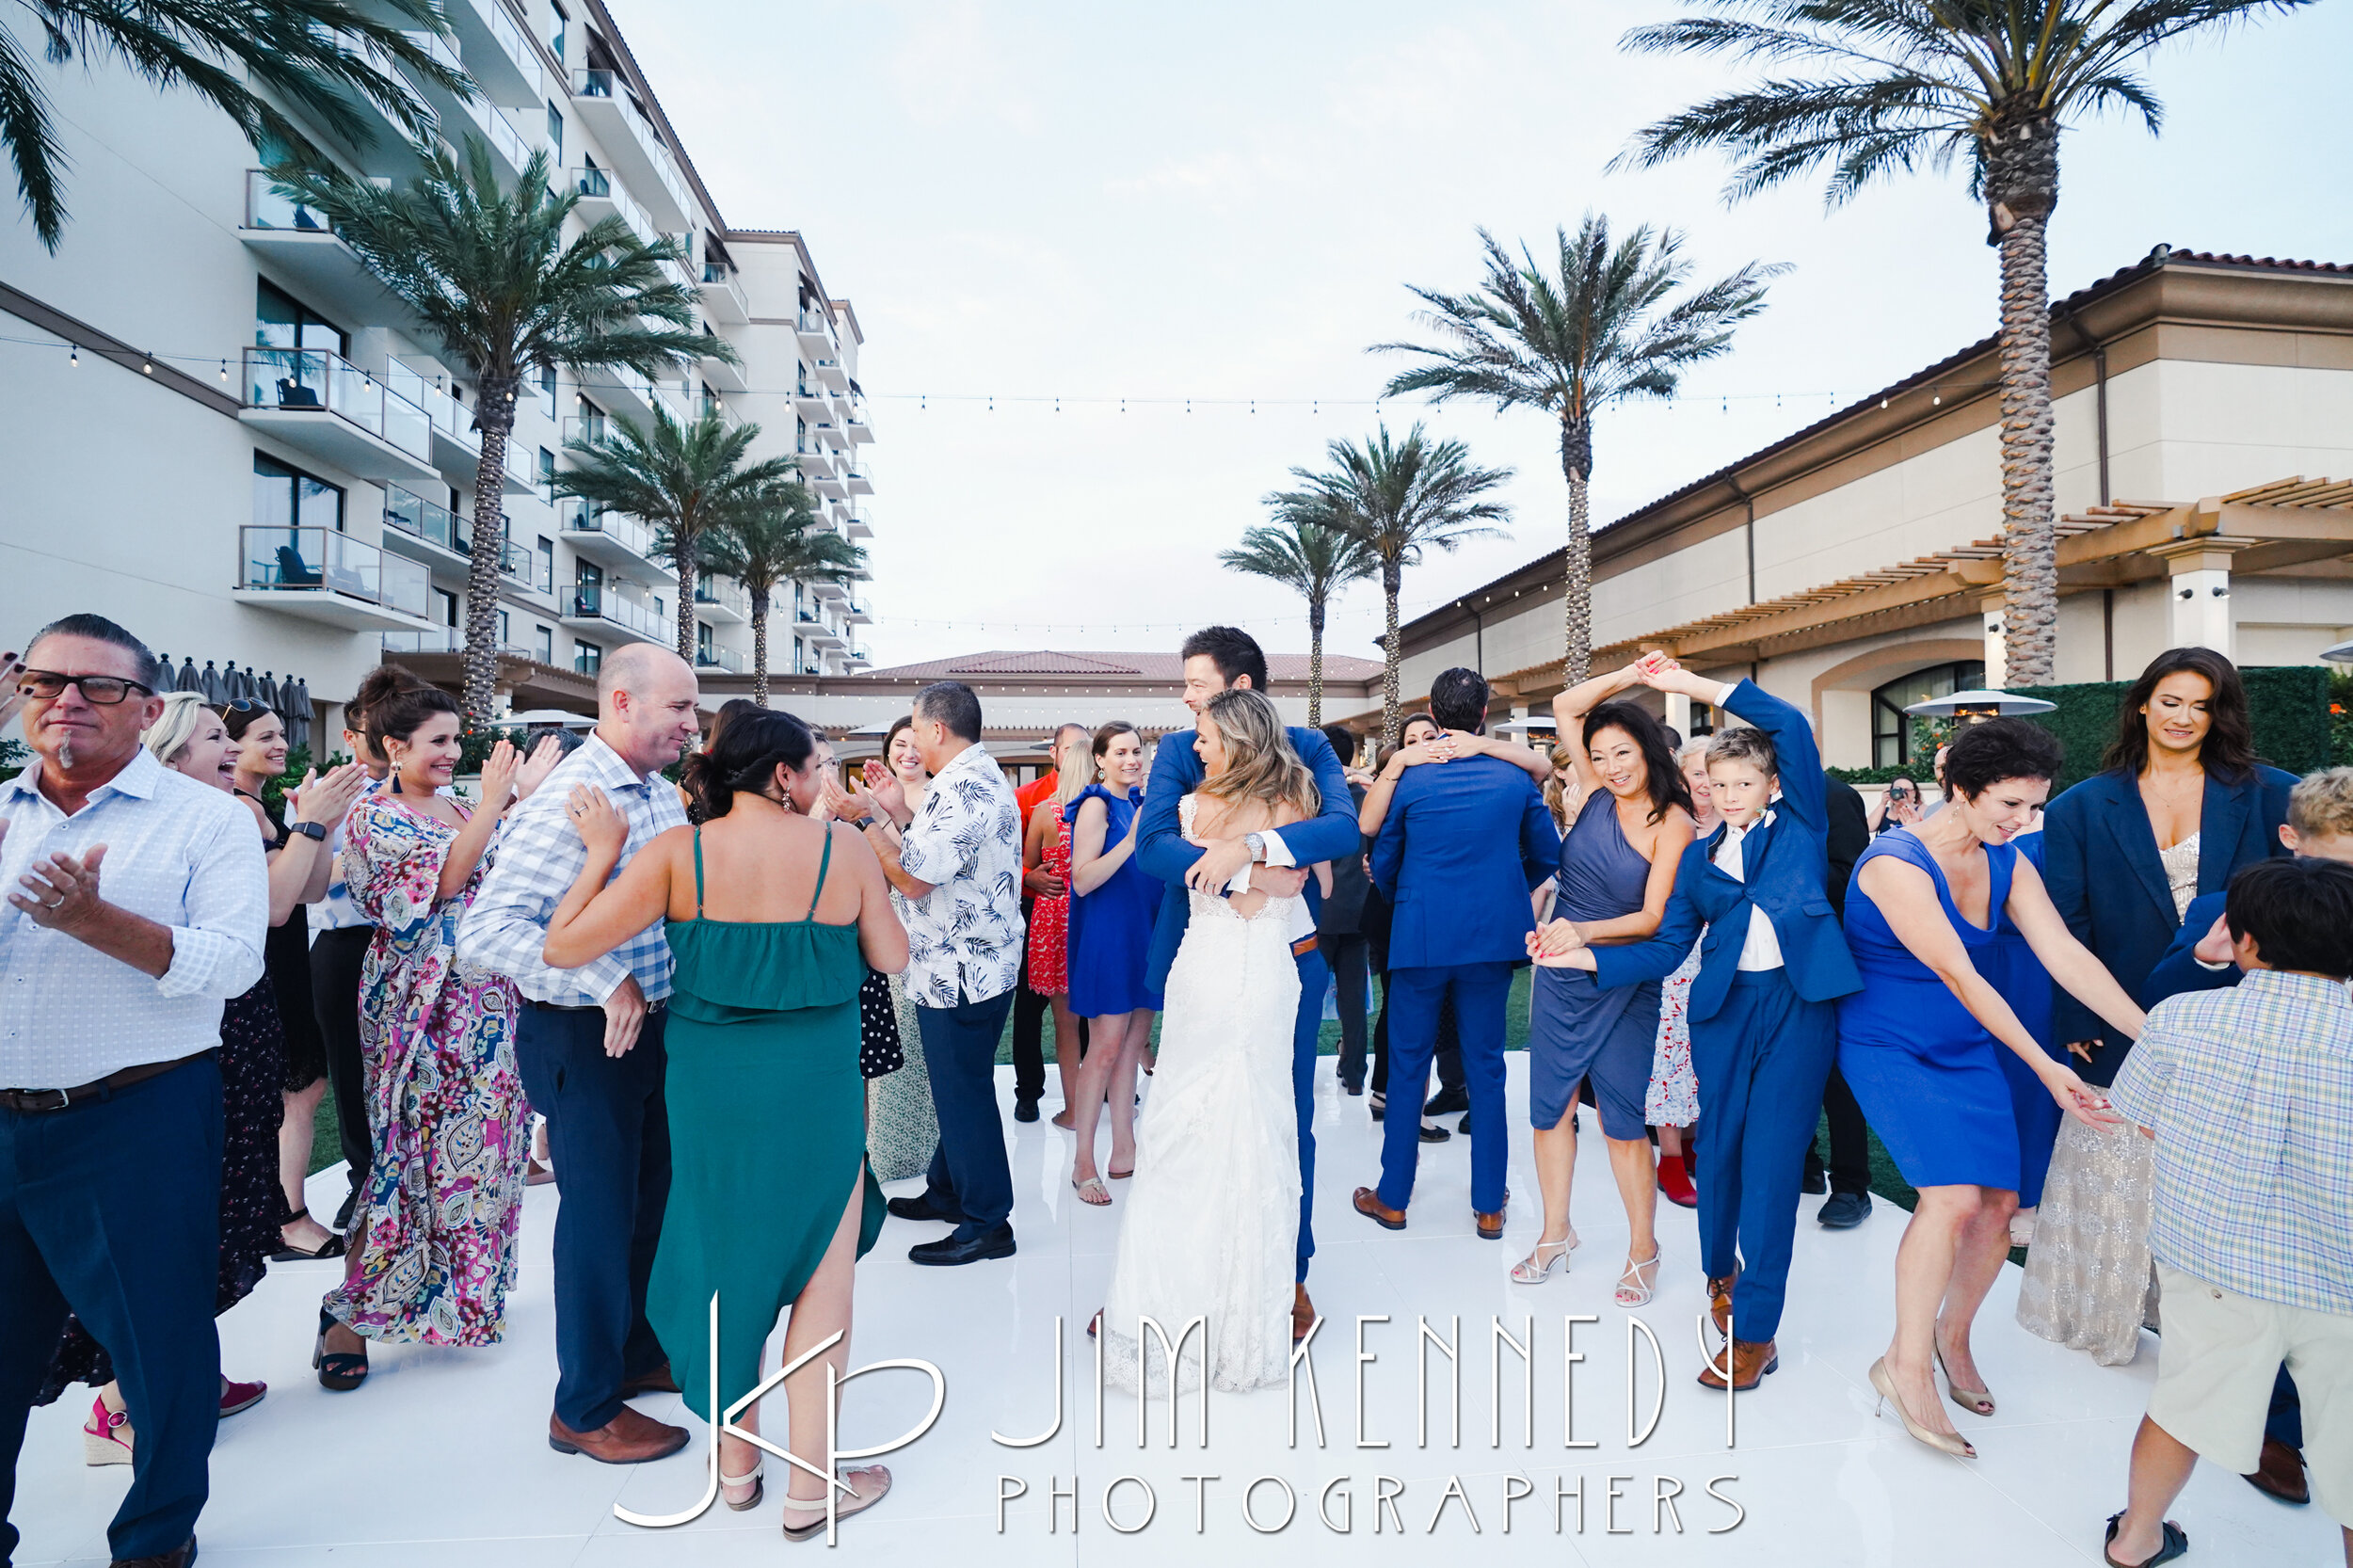 waterfront-hilton-wedding-jim-kennedy-photographers_0178.JPG